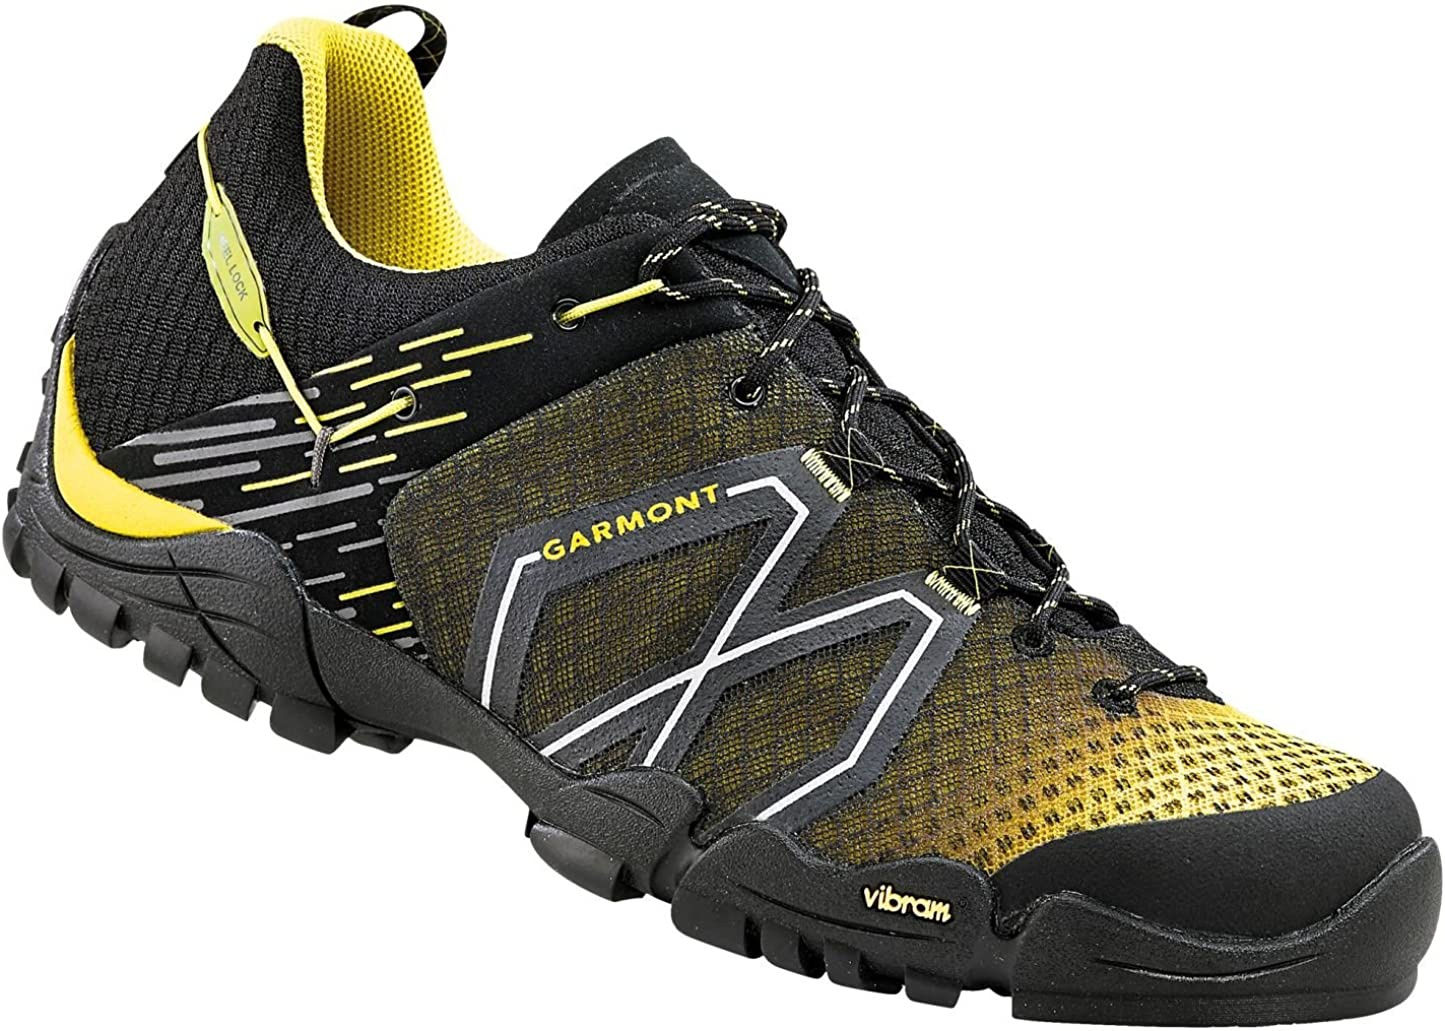 Garmont Men s Sticky Cloud Low Approach Hiking Shoes